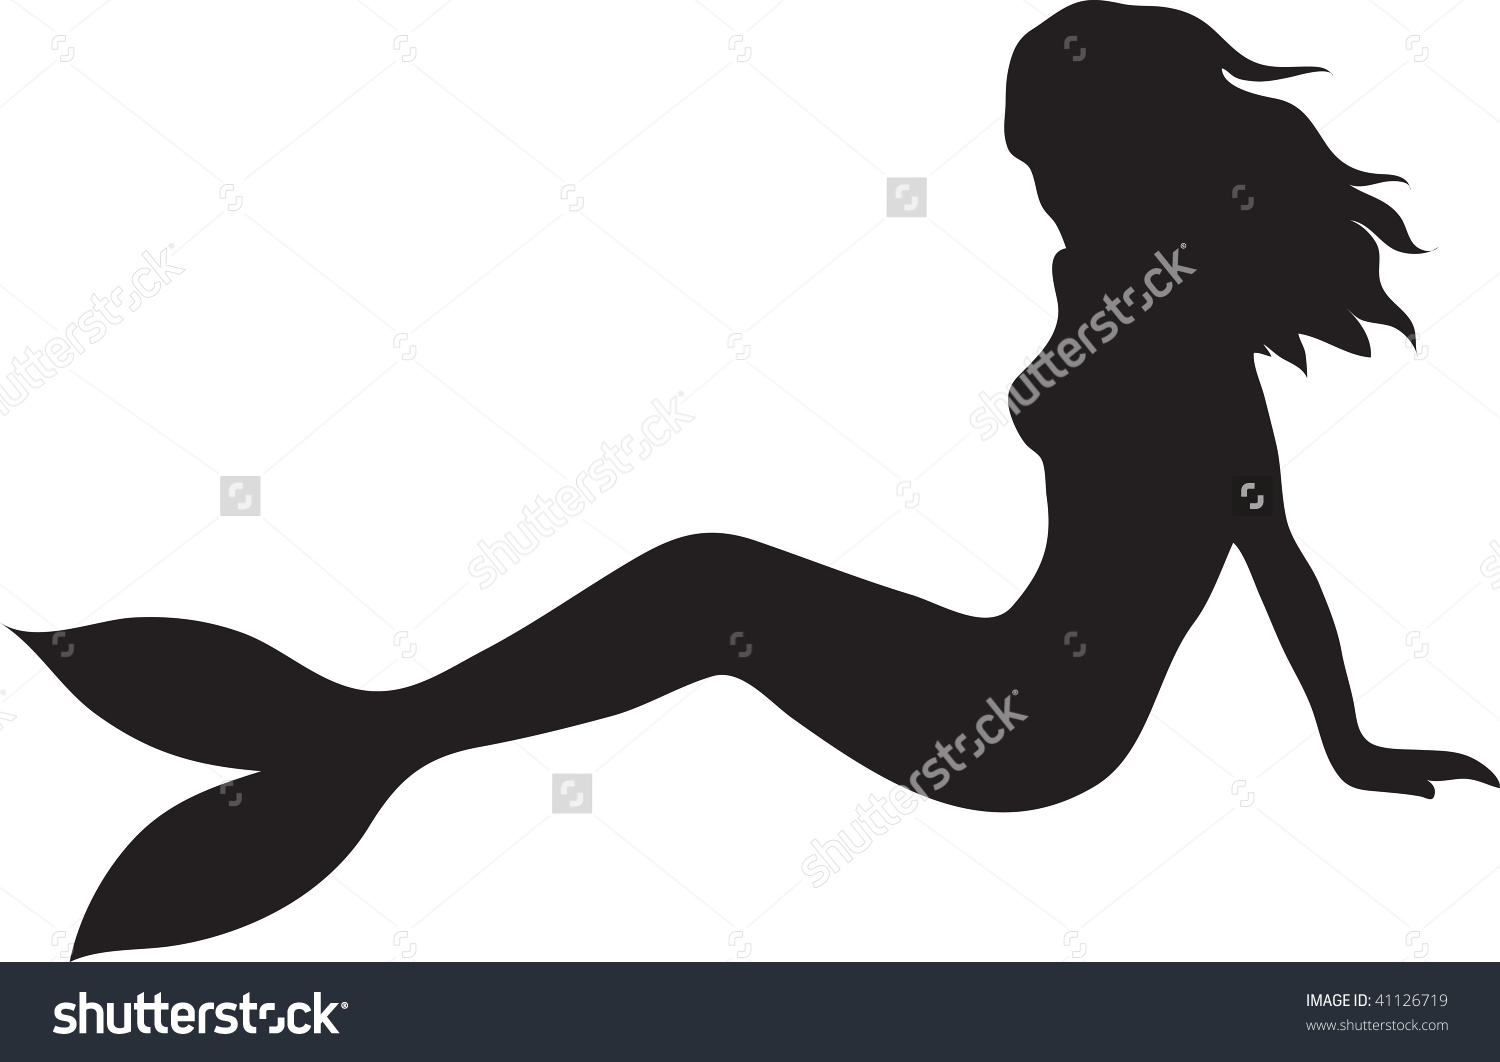 mermaid clipart silhouette on side #11